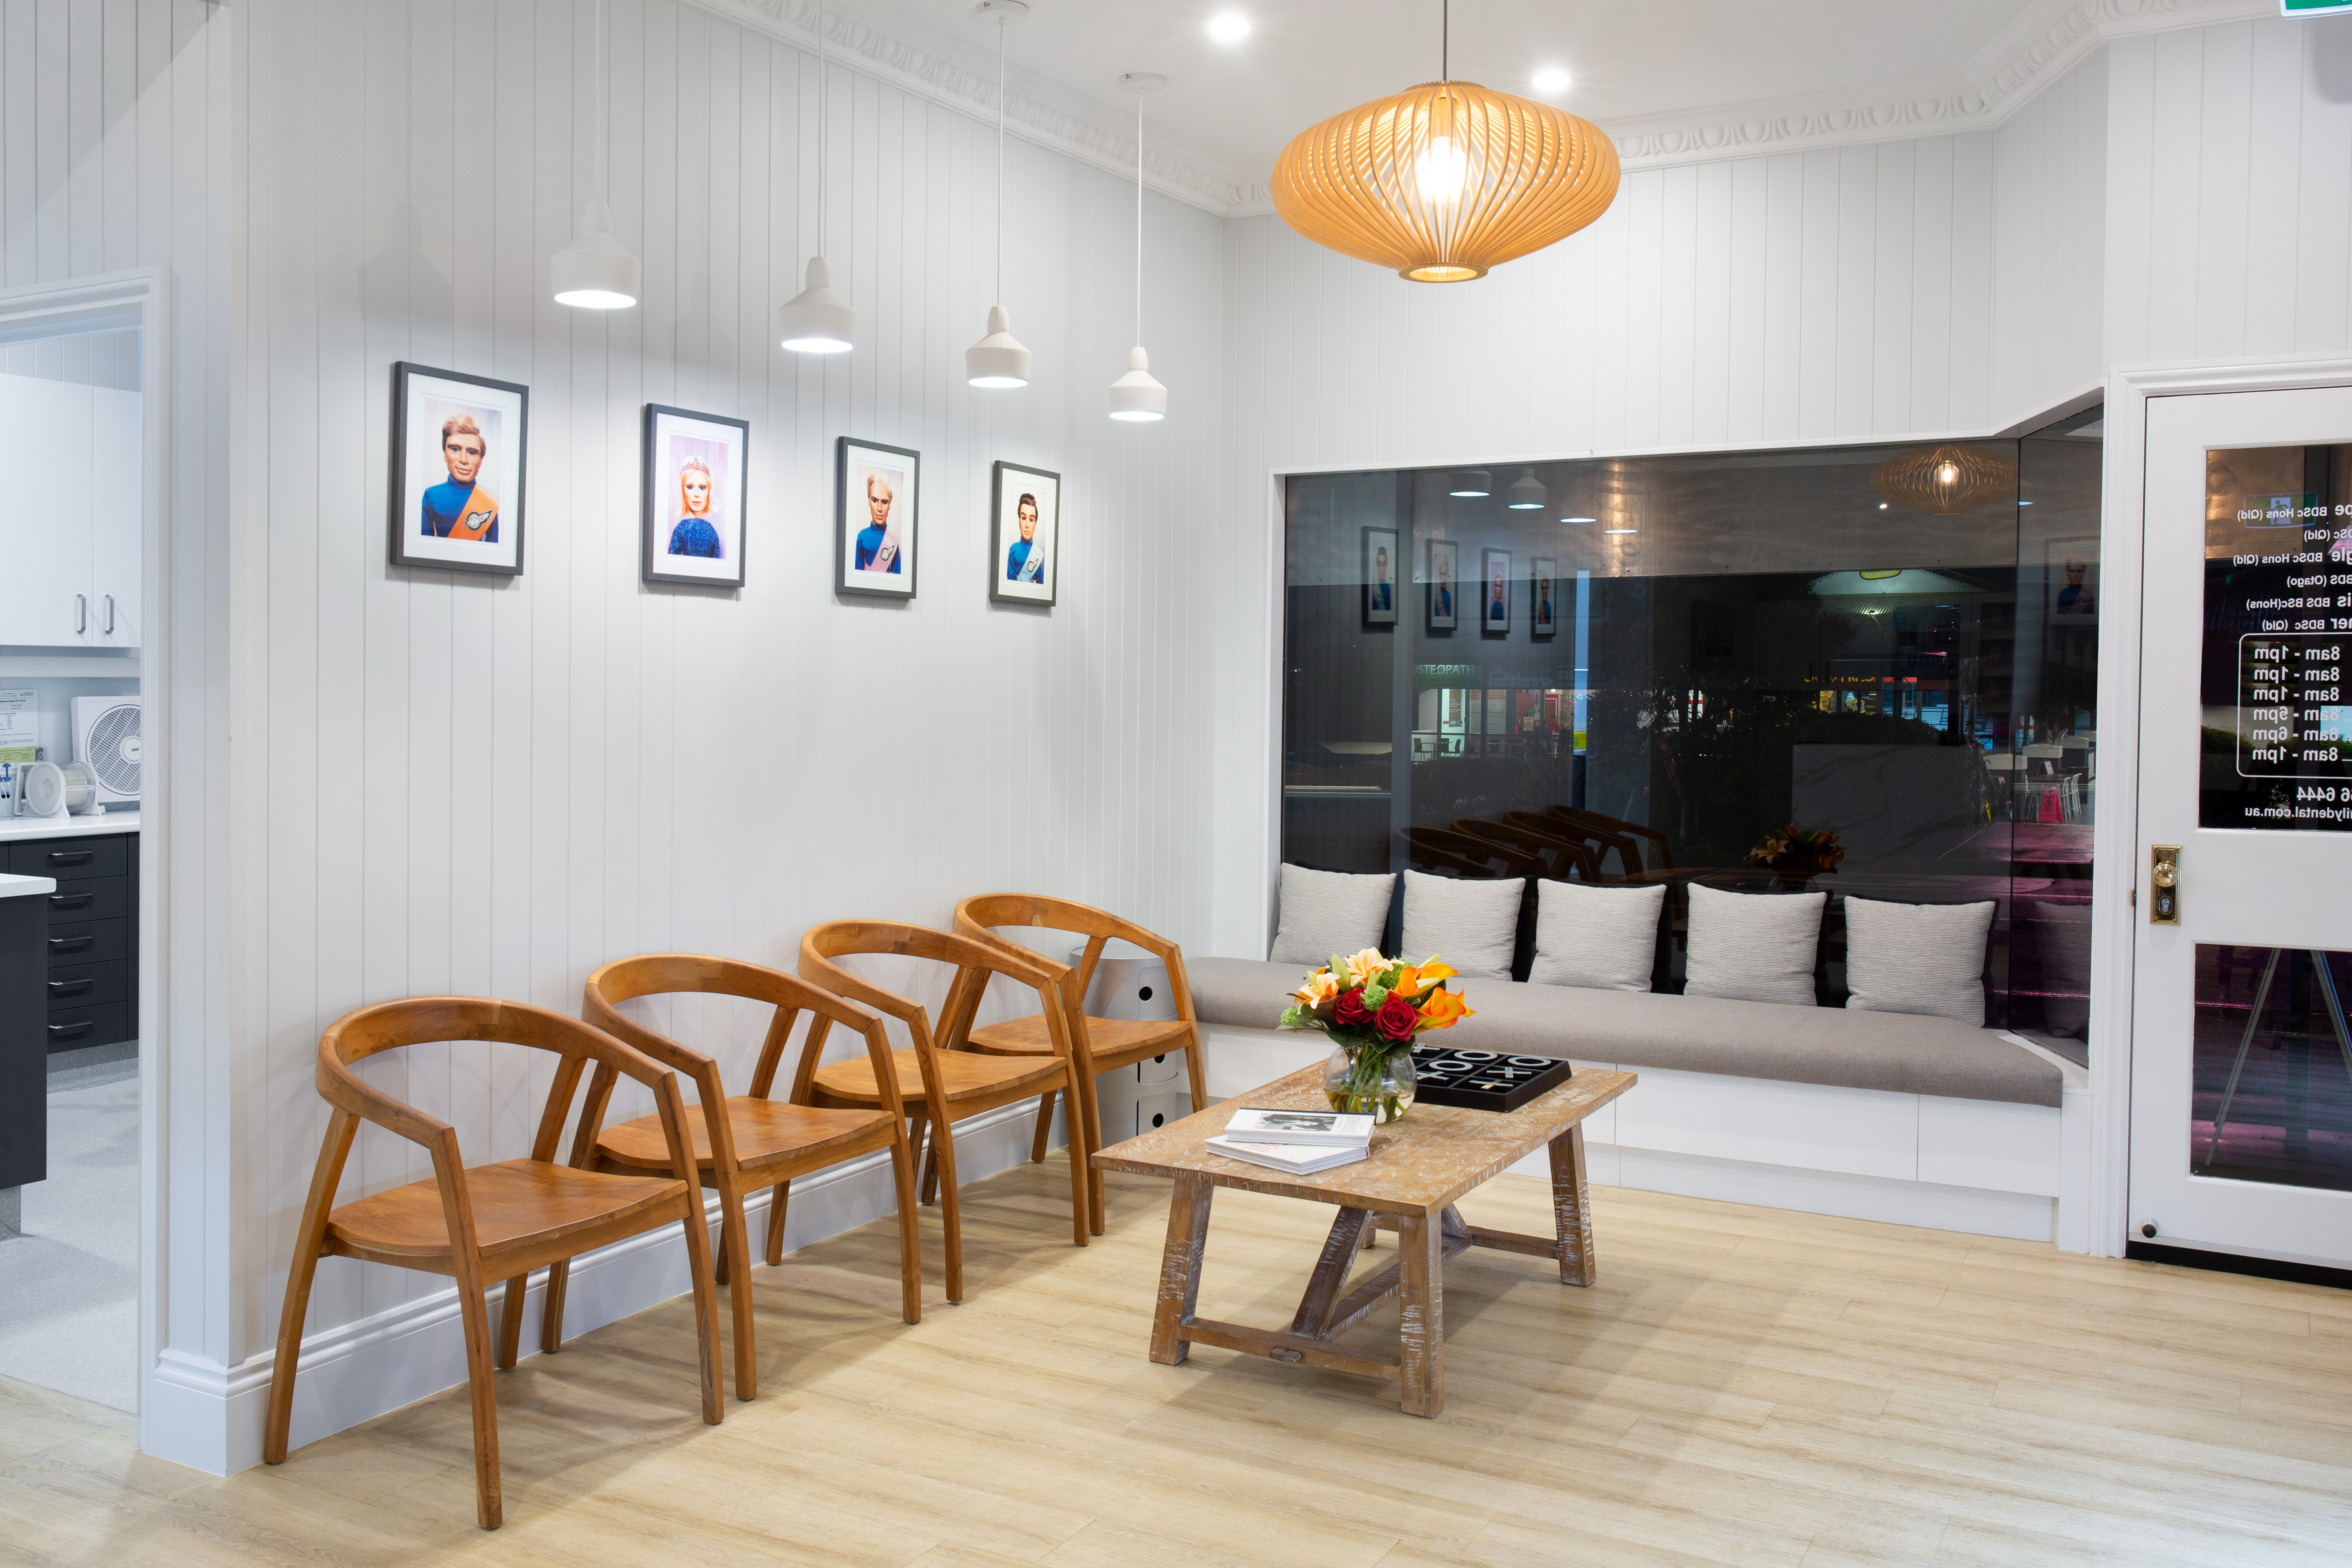 before and after, waiting room, dentifit, dental fitout